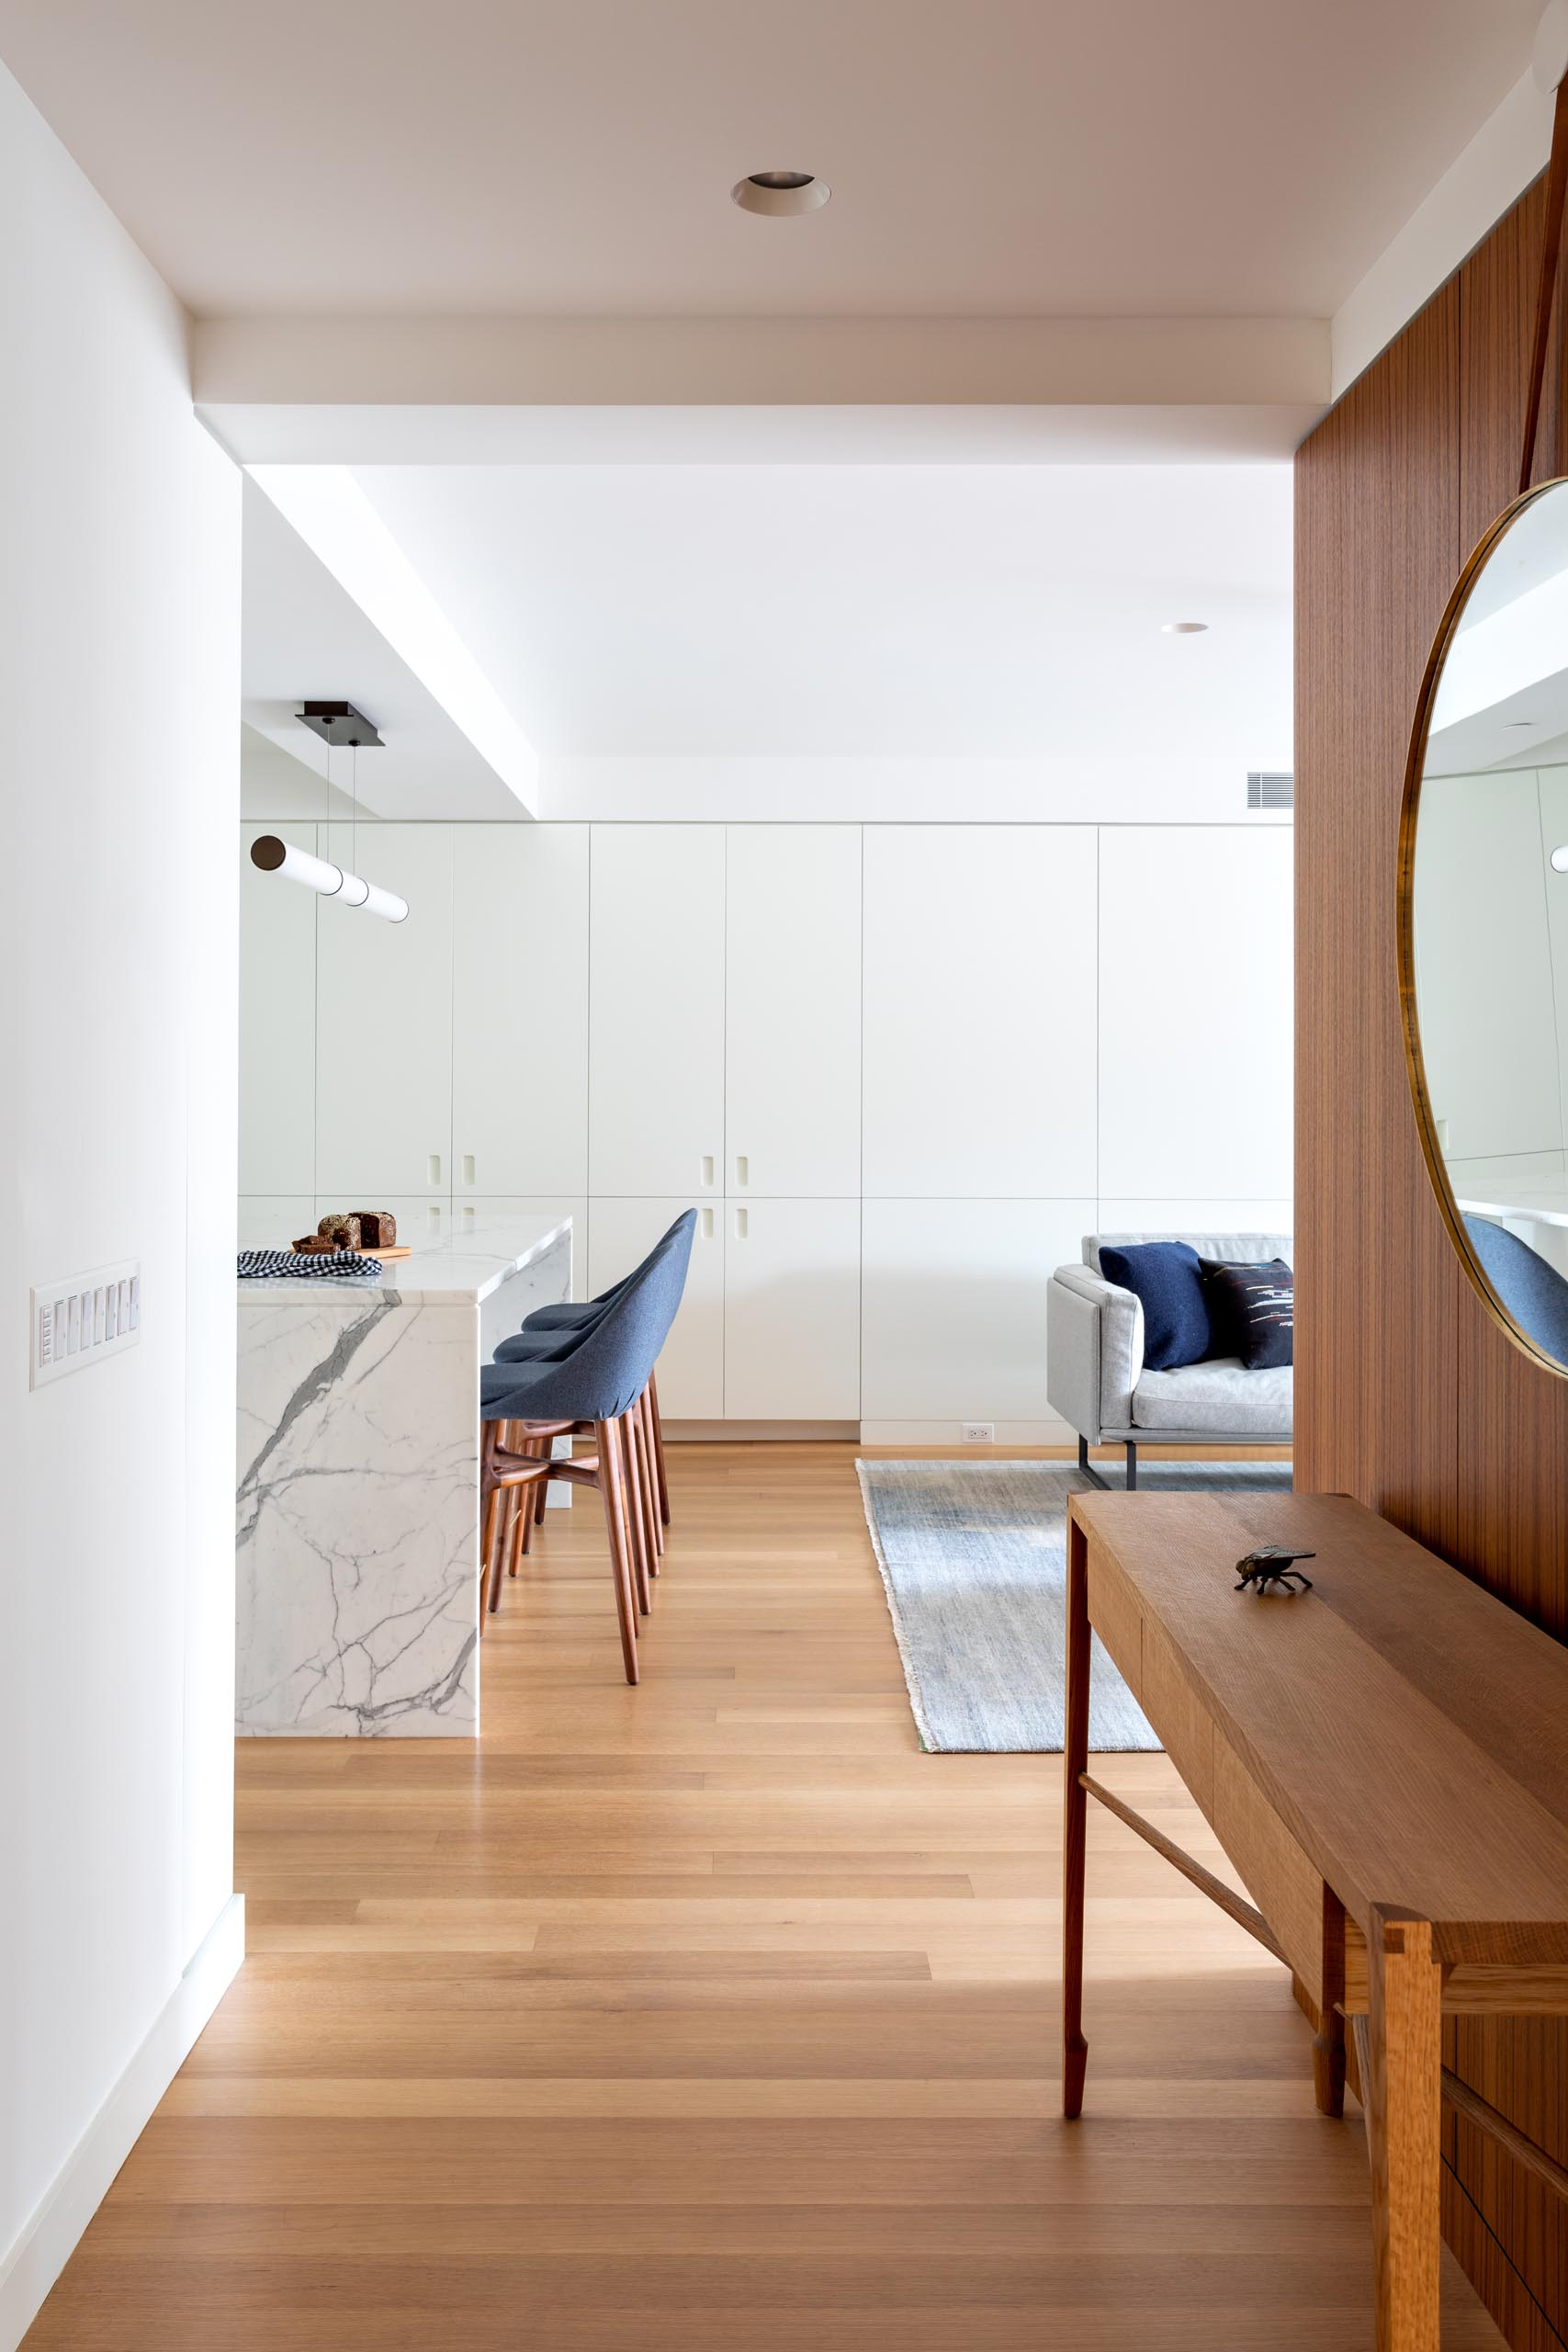 A modern apartment entryway with views of the white kitchen and gray furnished living room.